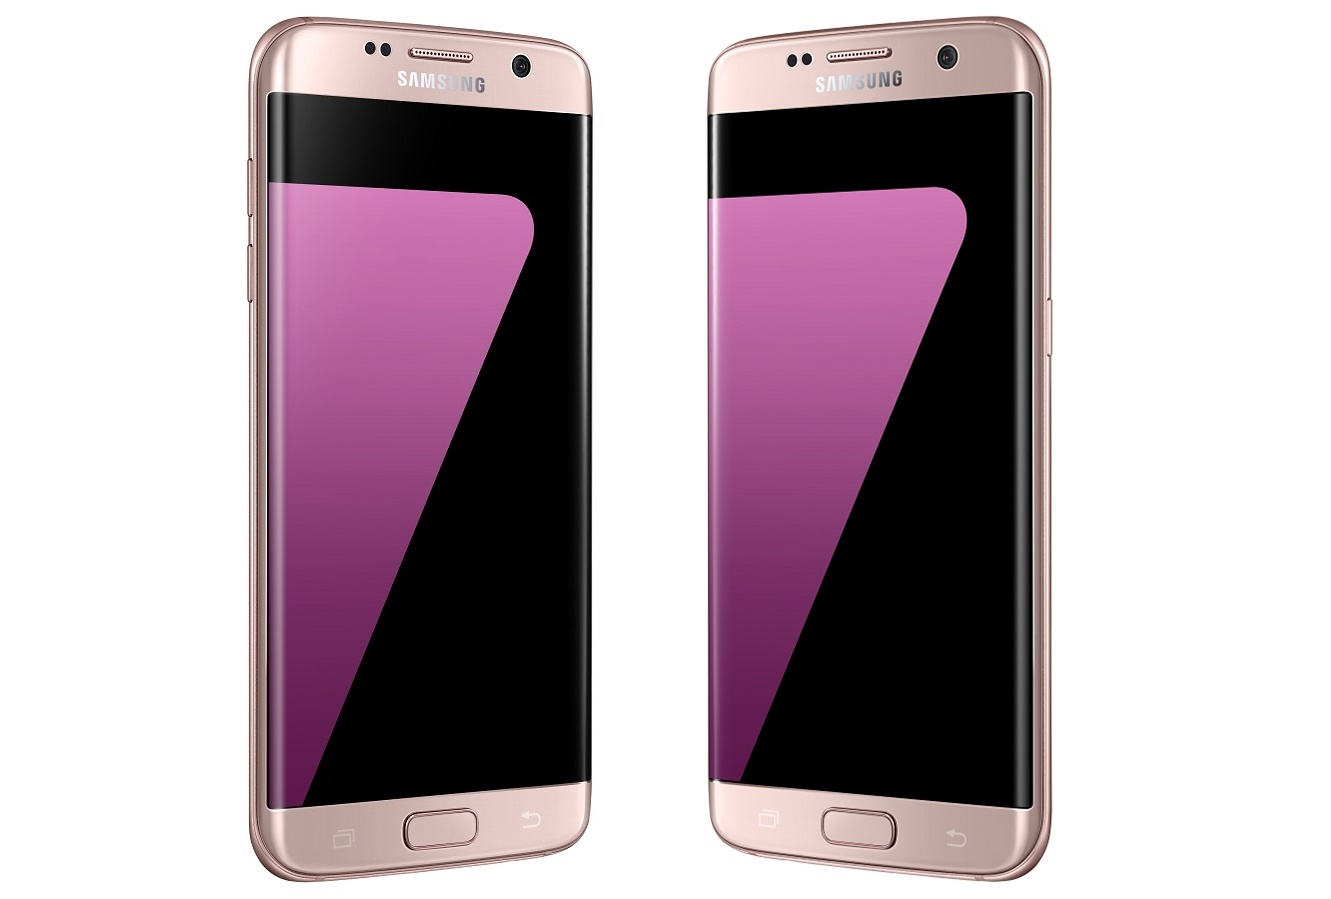 Image result for s7 edge pink gold